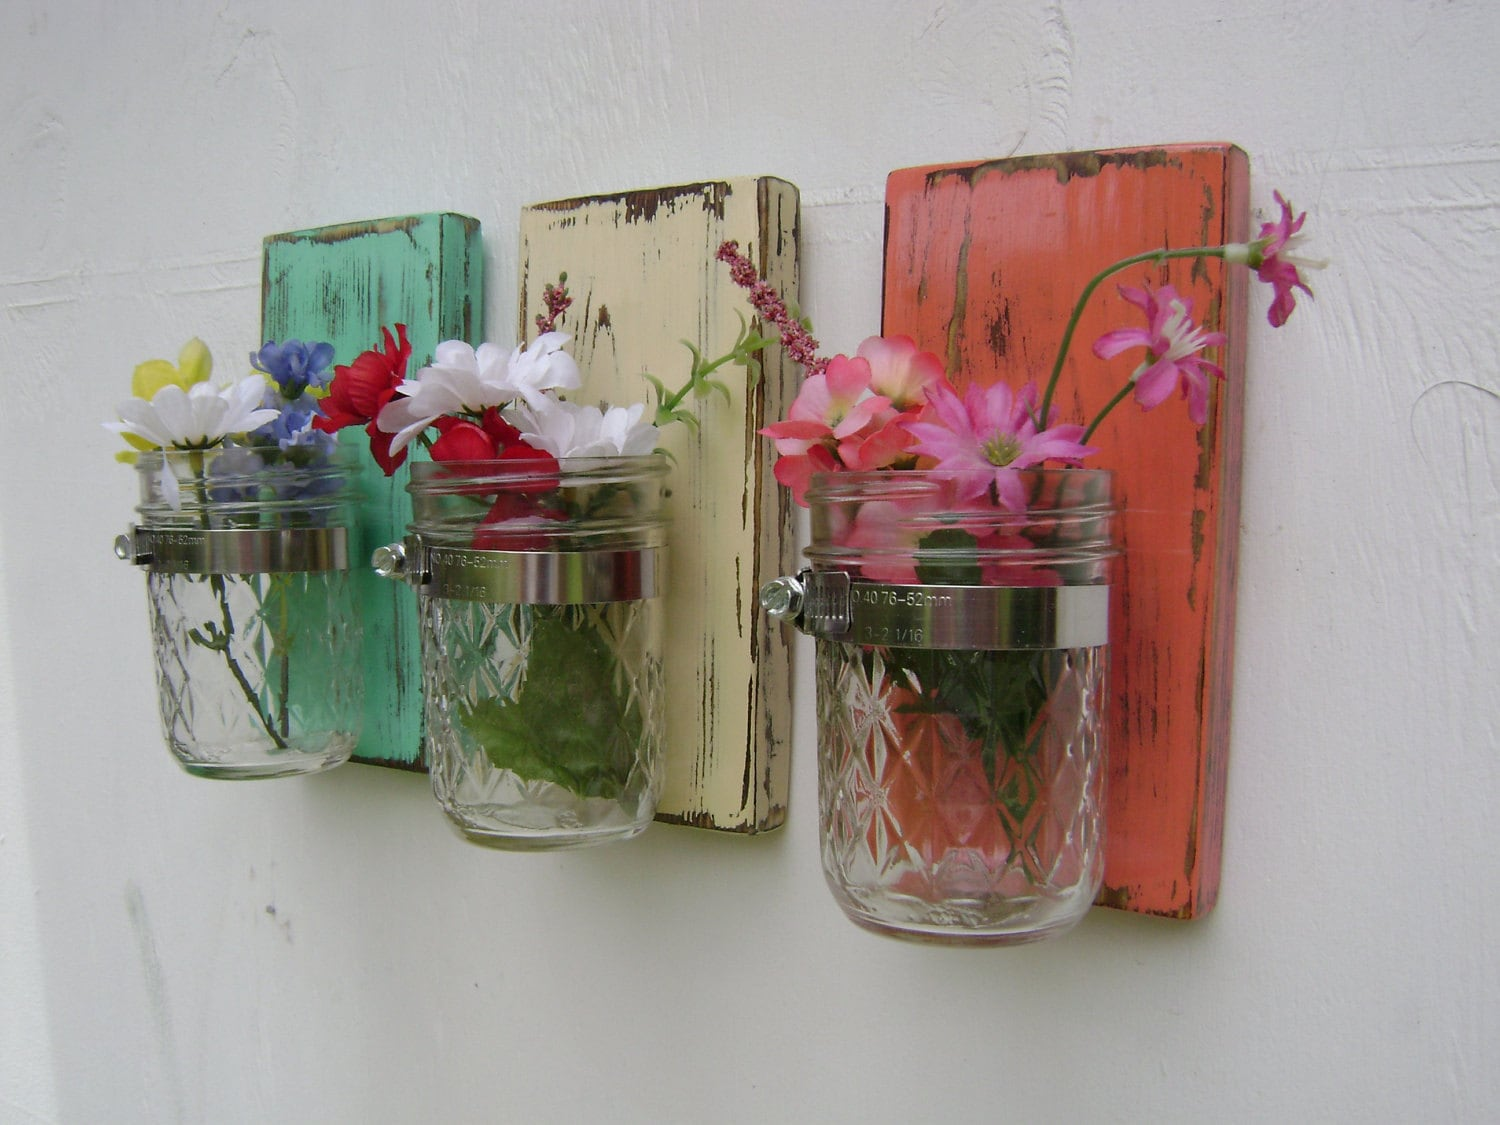 Wall sconces vases outdoor decor ideas summer 2016 wall sconce shabby chic rustic wooden vases by unclejohnscabin reviewsmspy